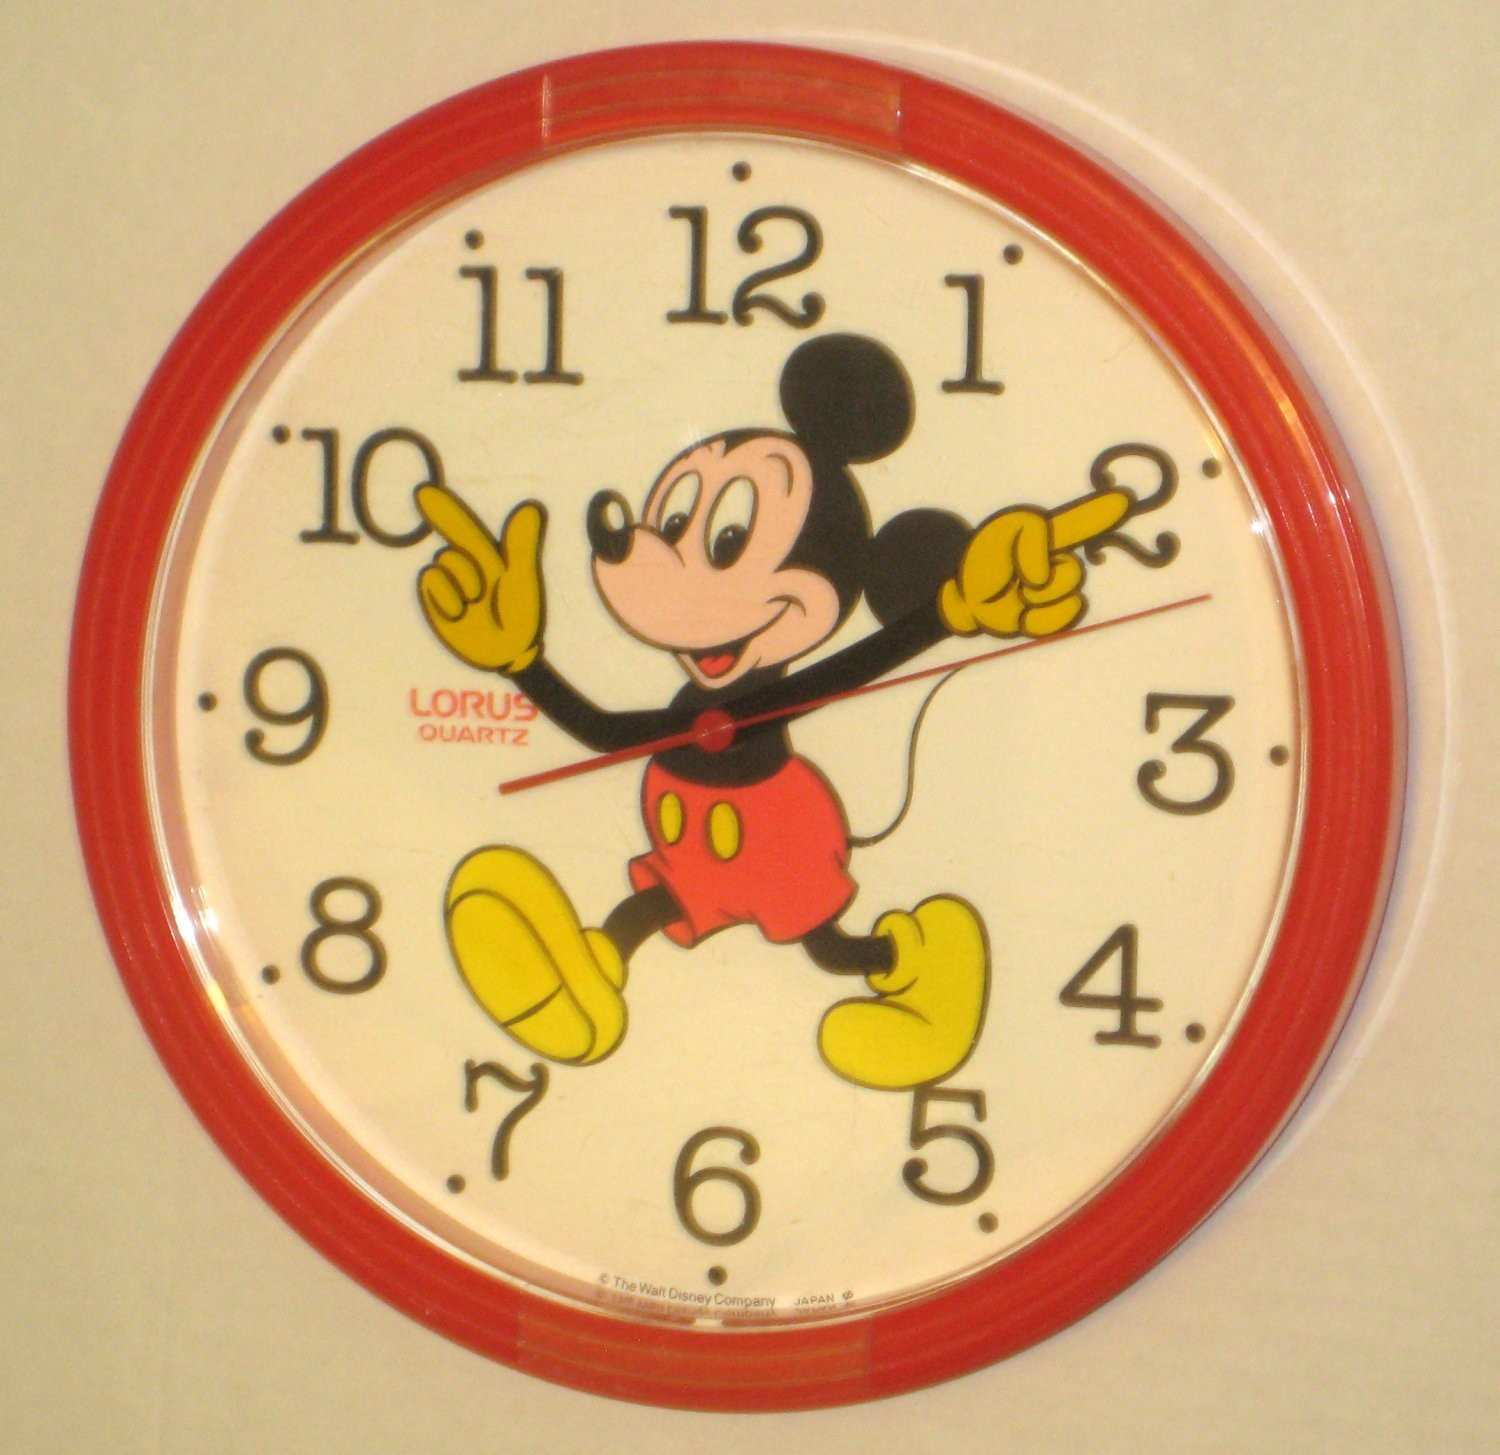 SOLD Mickey Mouse Wall Clock Lorus Quartz Moving Arms Hands Battery